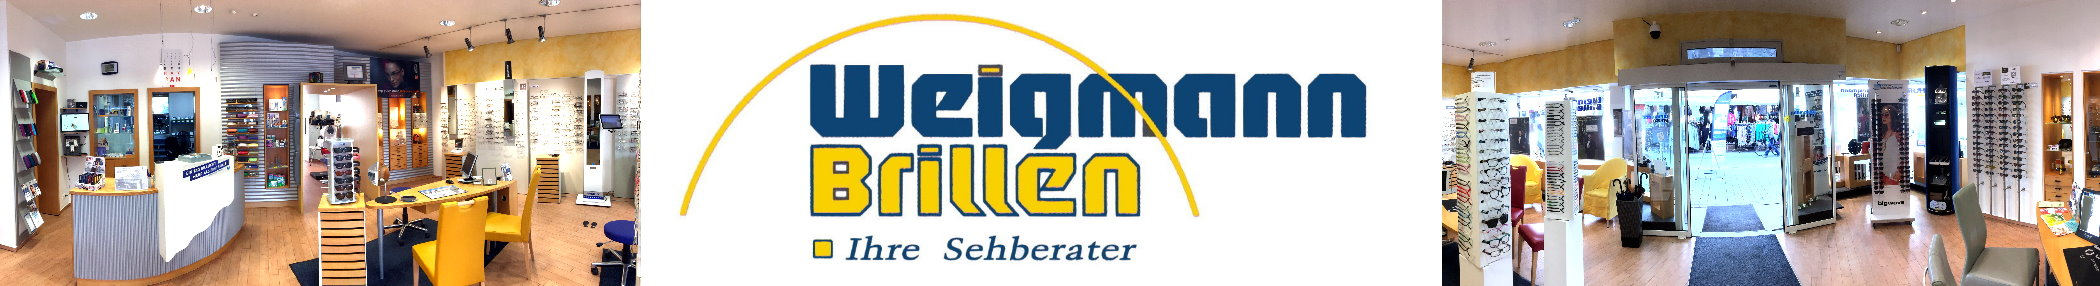 Weigmann-Brillen- Logo